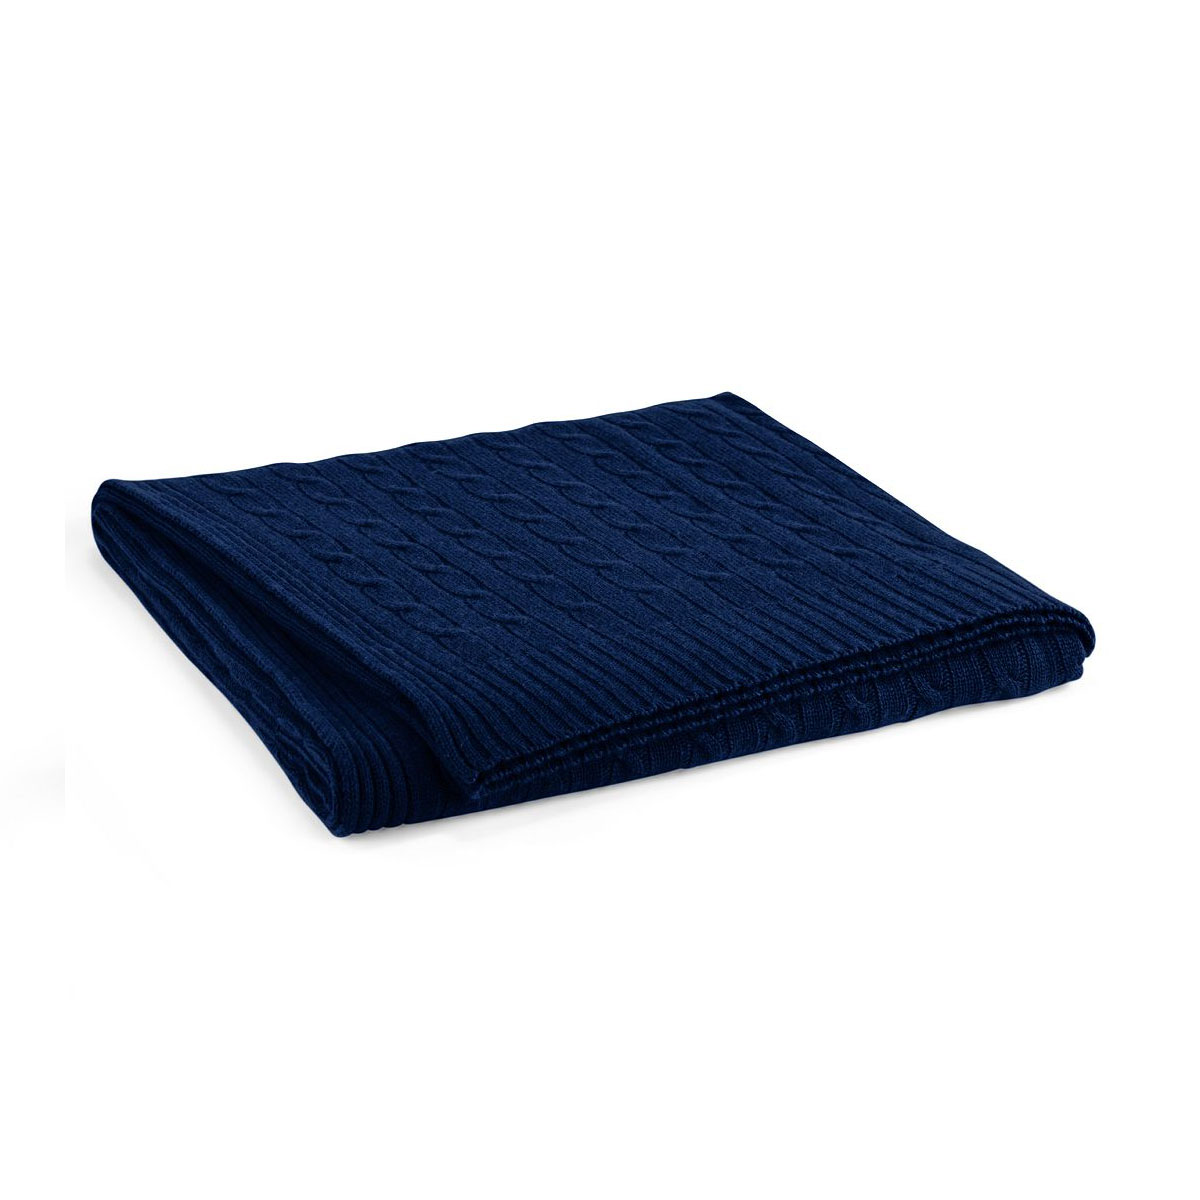 Ralph Lauren Cable Cashmere Throw Blanket, Polo Navy